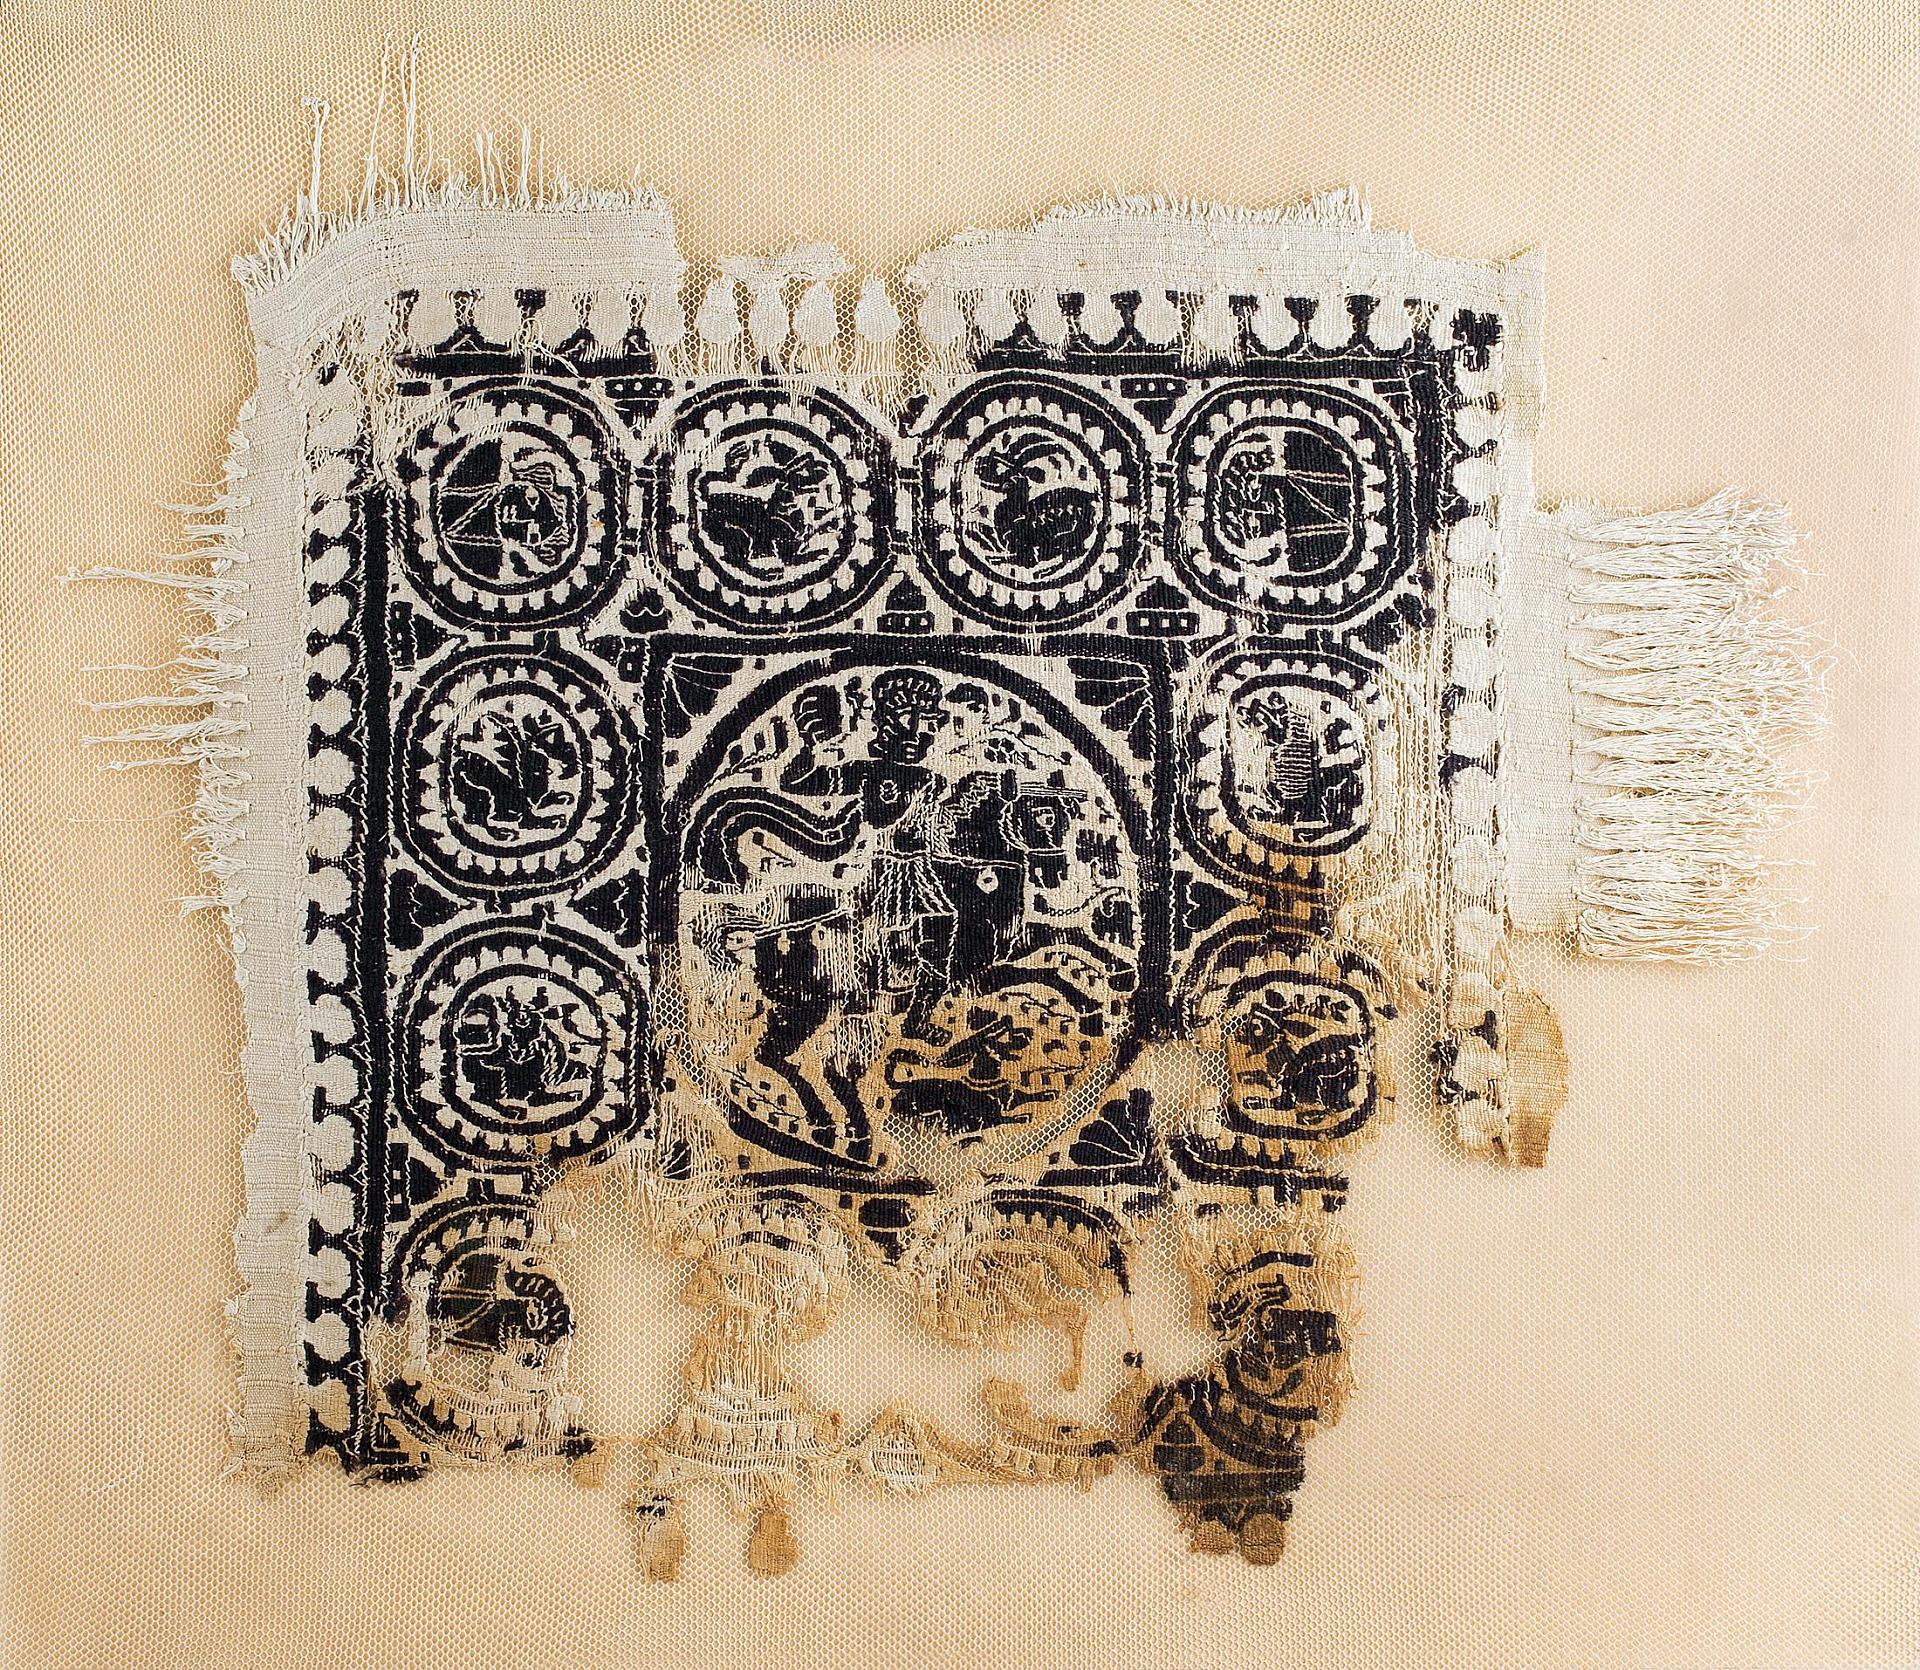 Fabric with the Depiction of an Amazon, 5th century